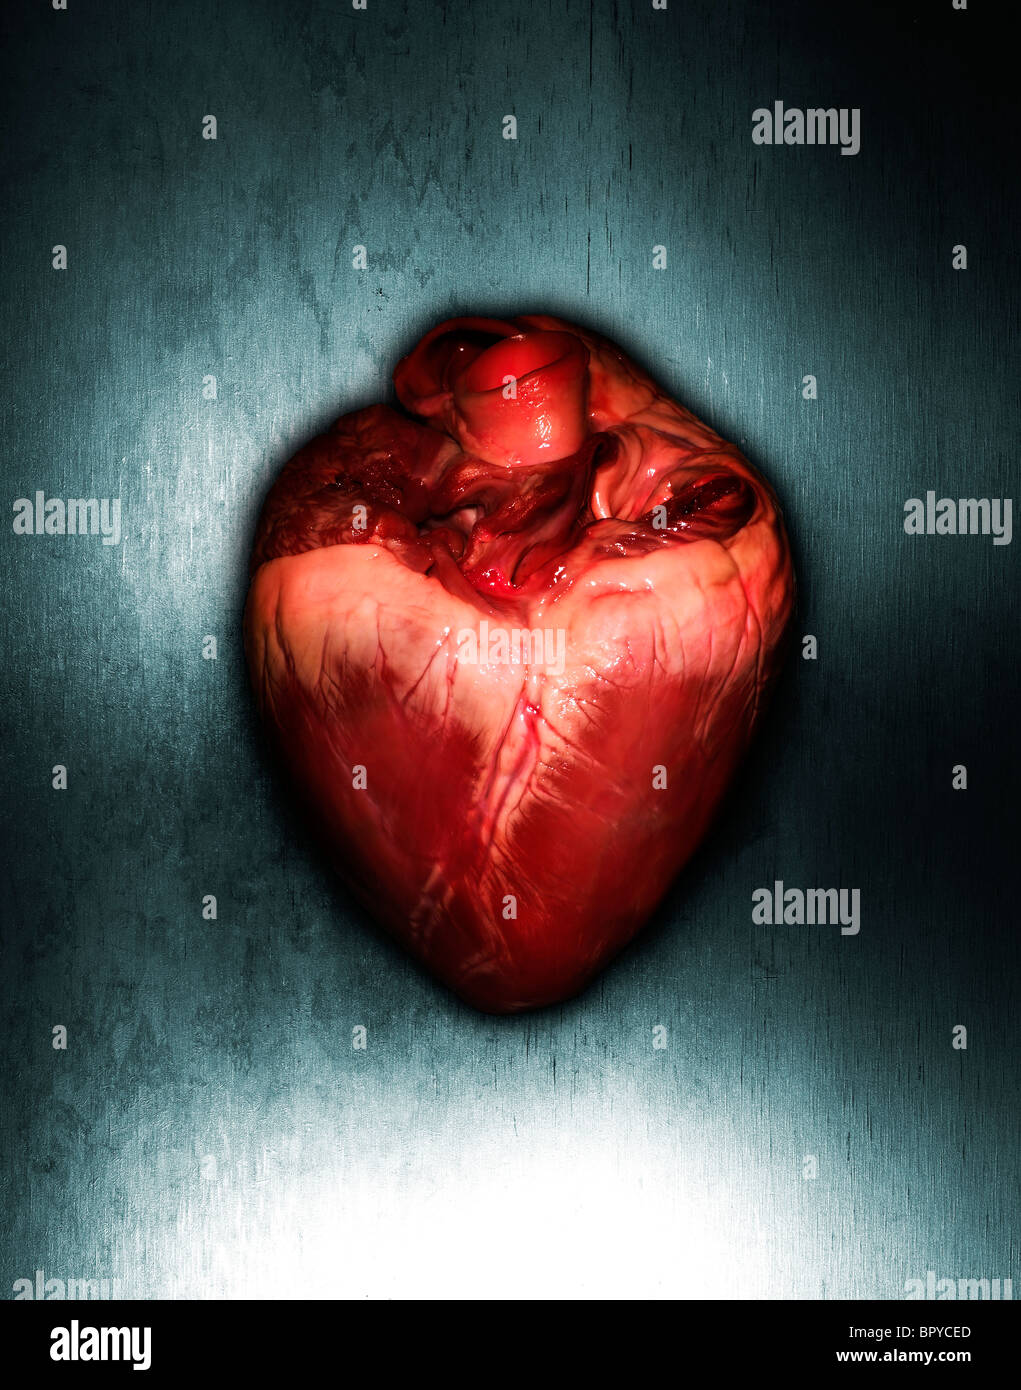 A heart on a metal background with a dramatic lighting - Stock Image